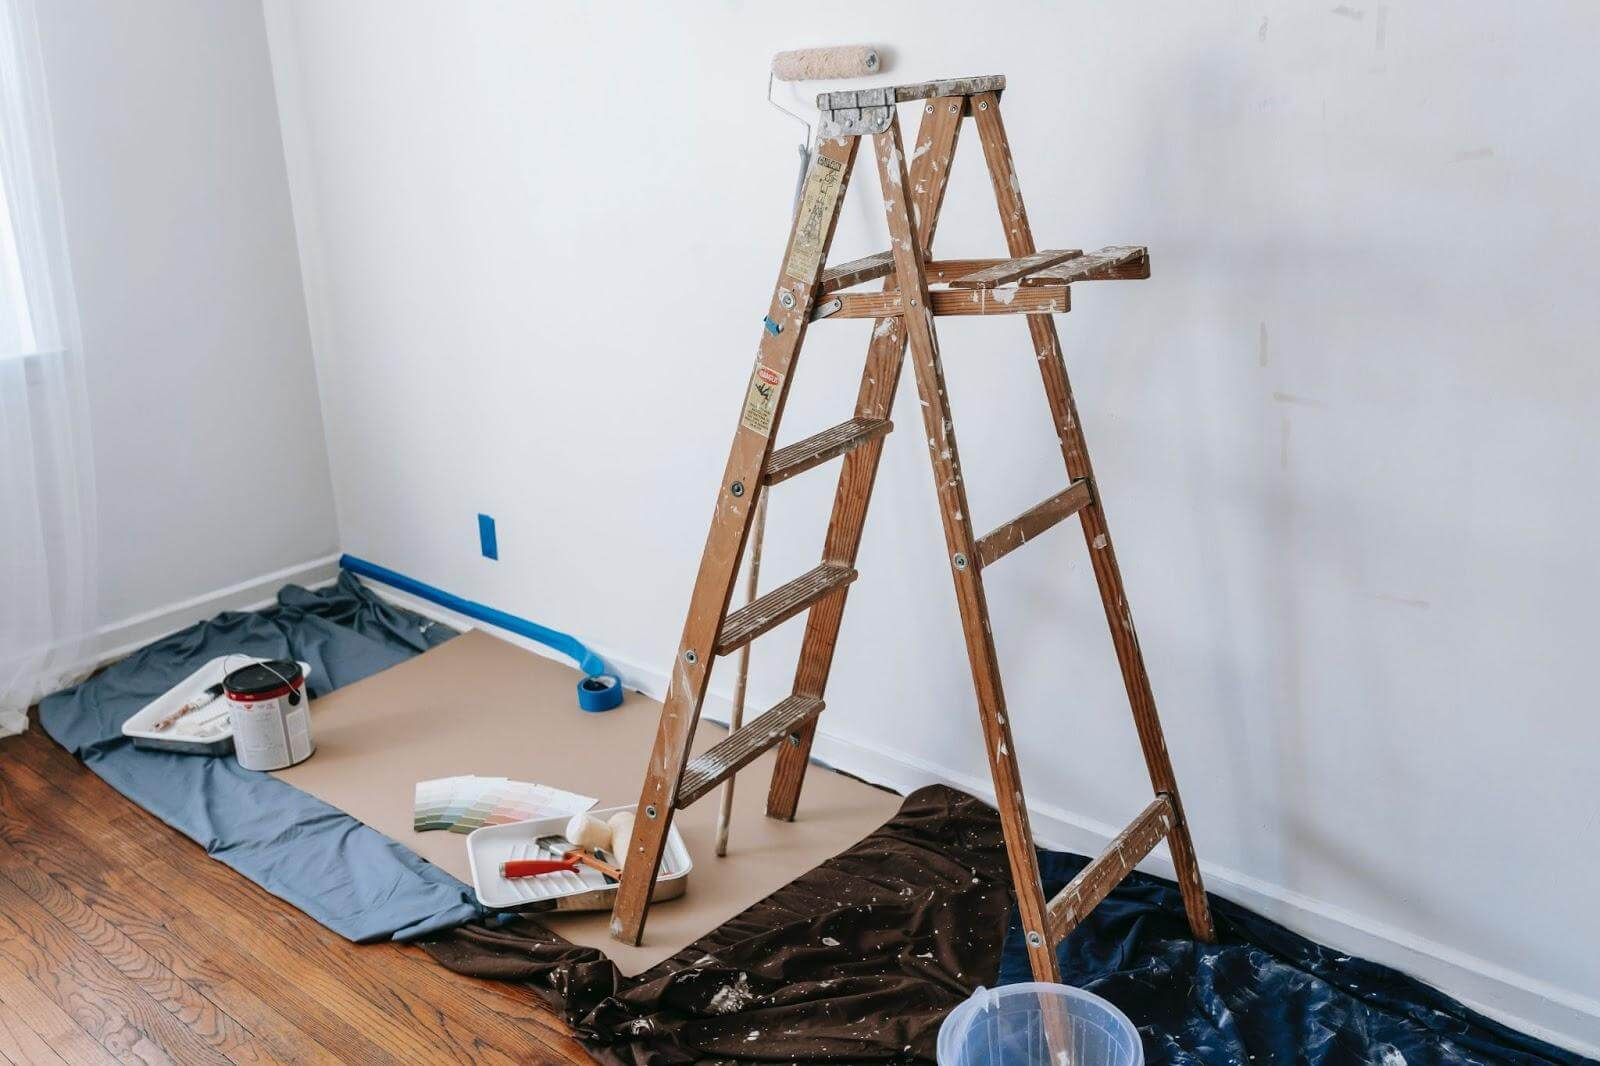 What are your painting ideas for the new home